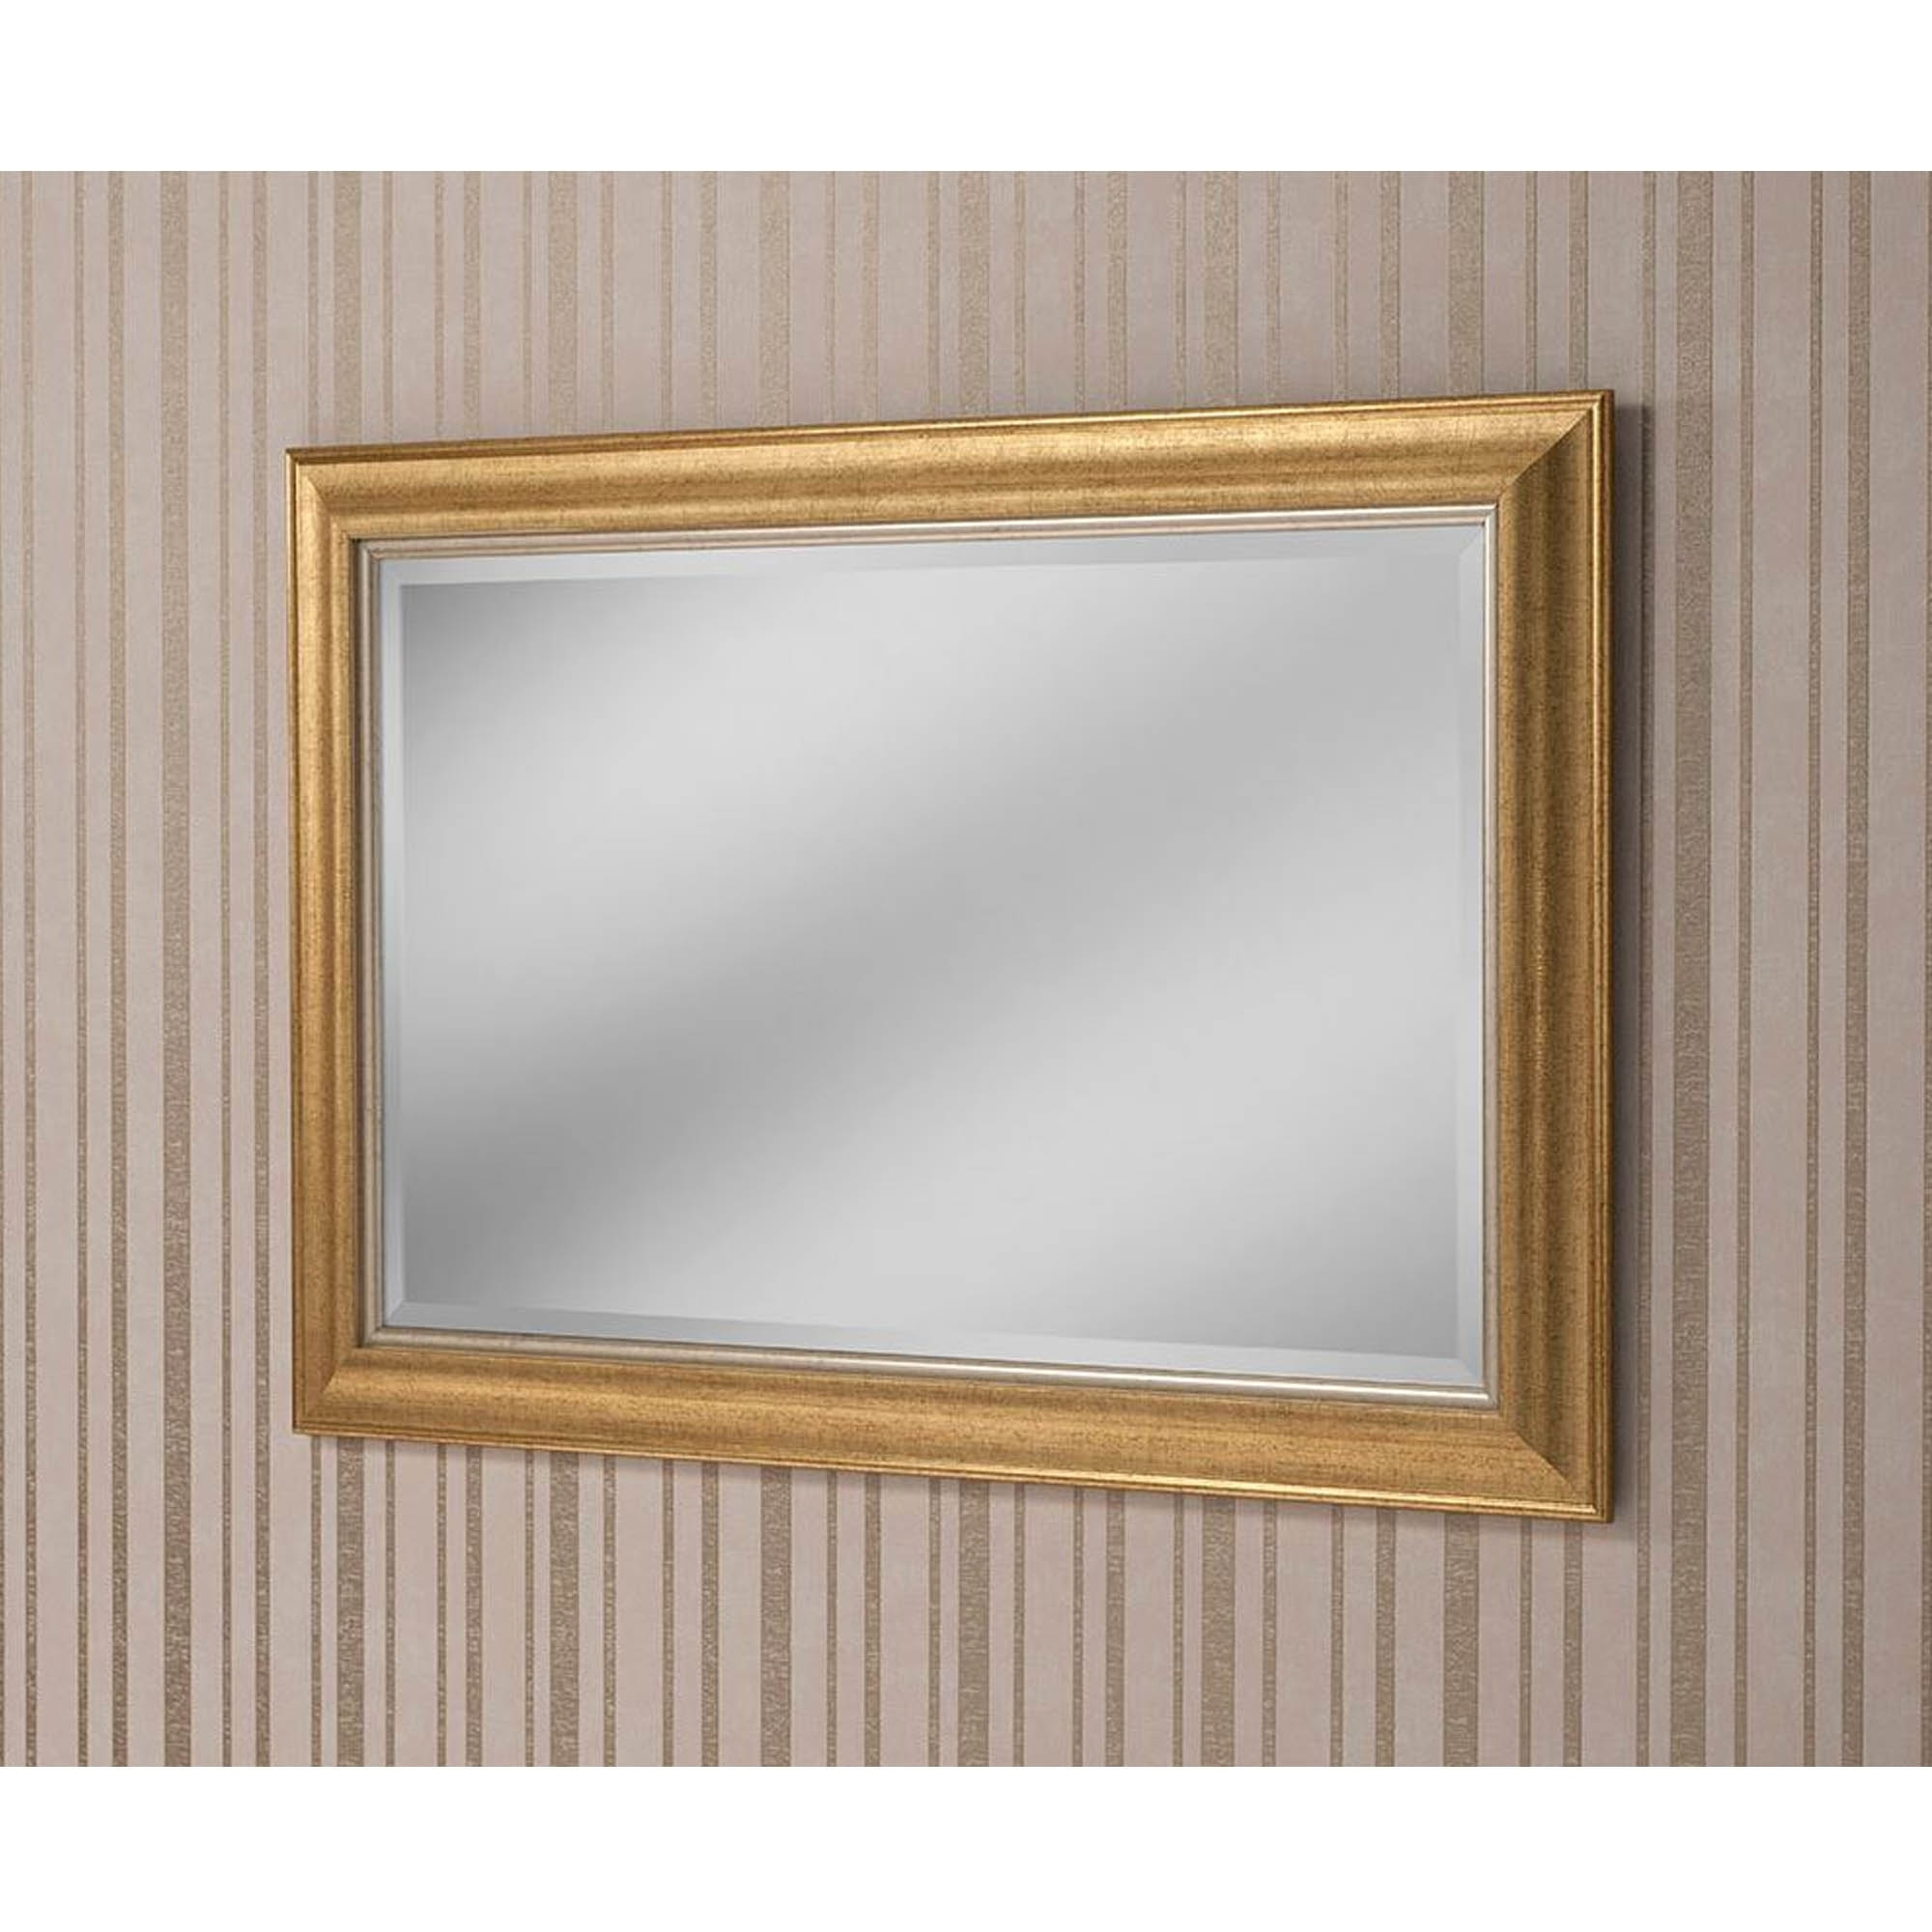 Well Known Oblong Wall Mirrors With Regard To Decorative Gold Rectangular Wall Mirror (View 8 of 20)